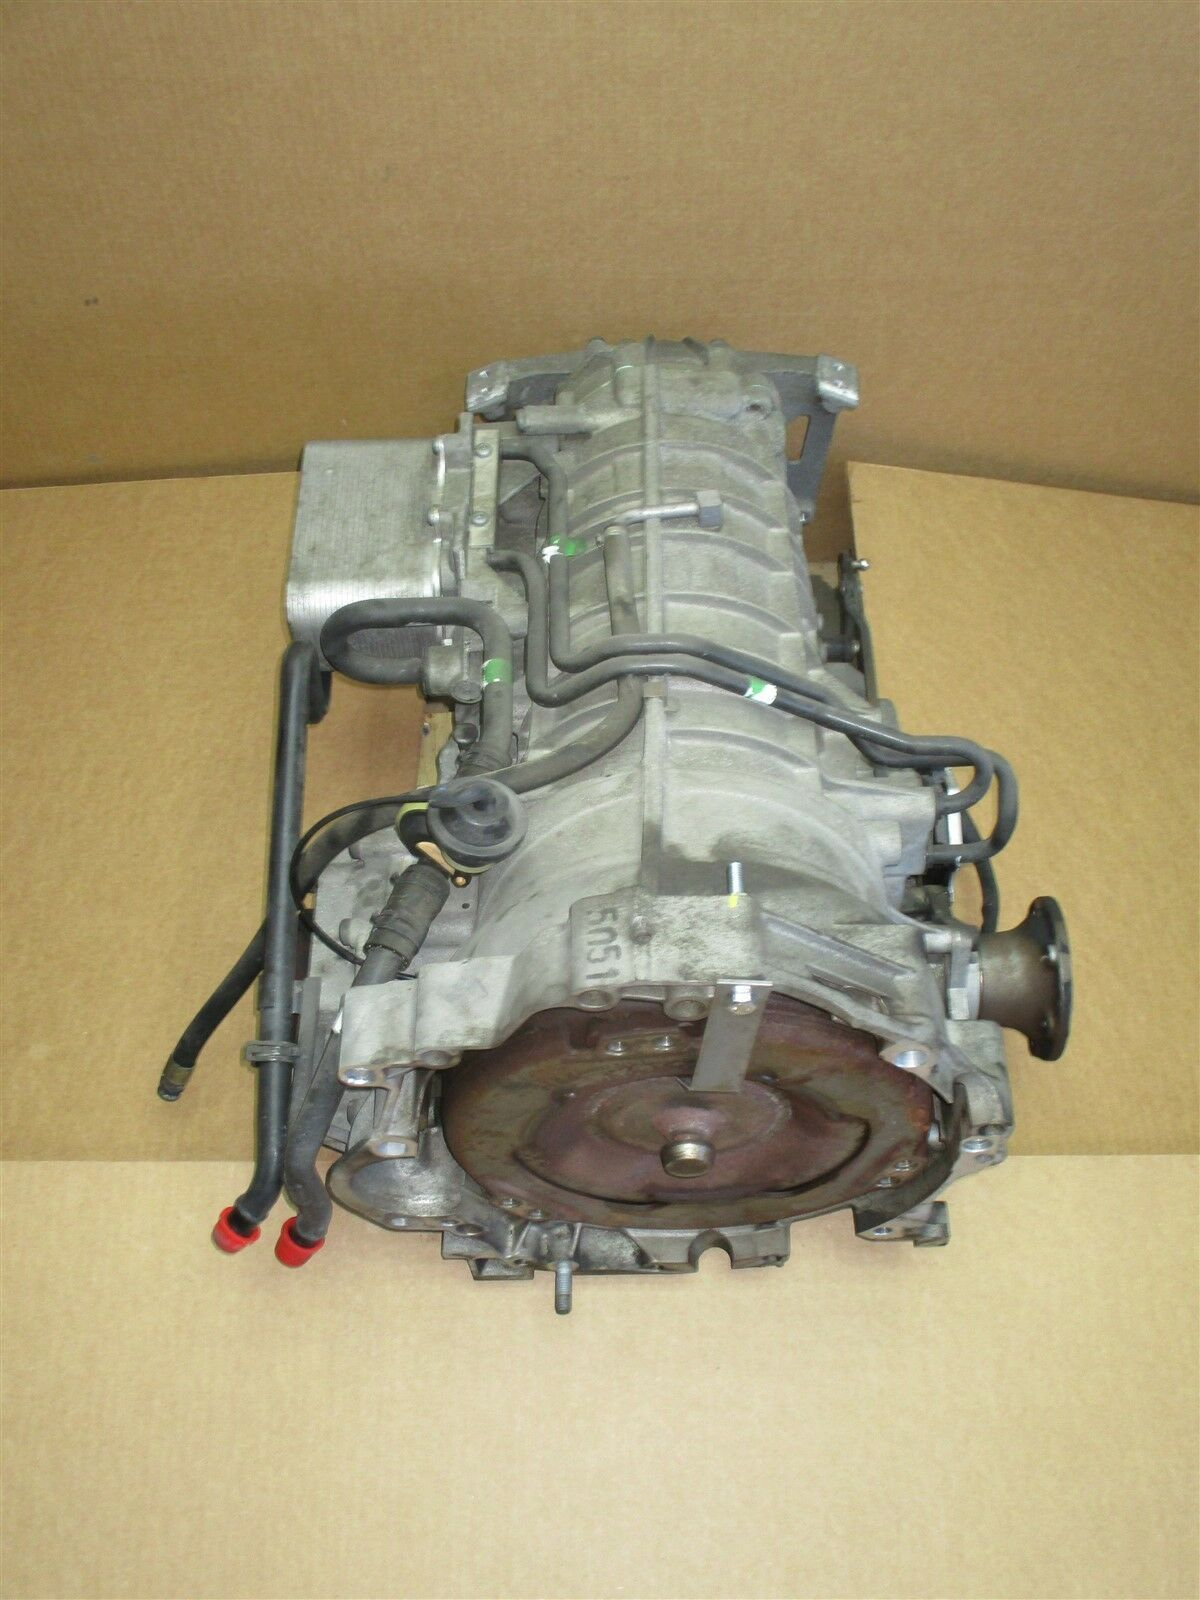 06 Boxster Porsche 987 AUTOMATIC TRANSMISSION 1060030109 1332799 5HP-19 92,197